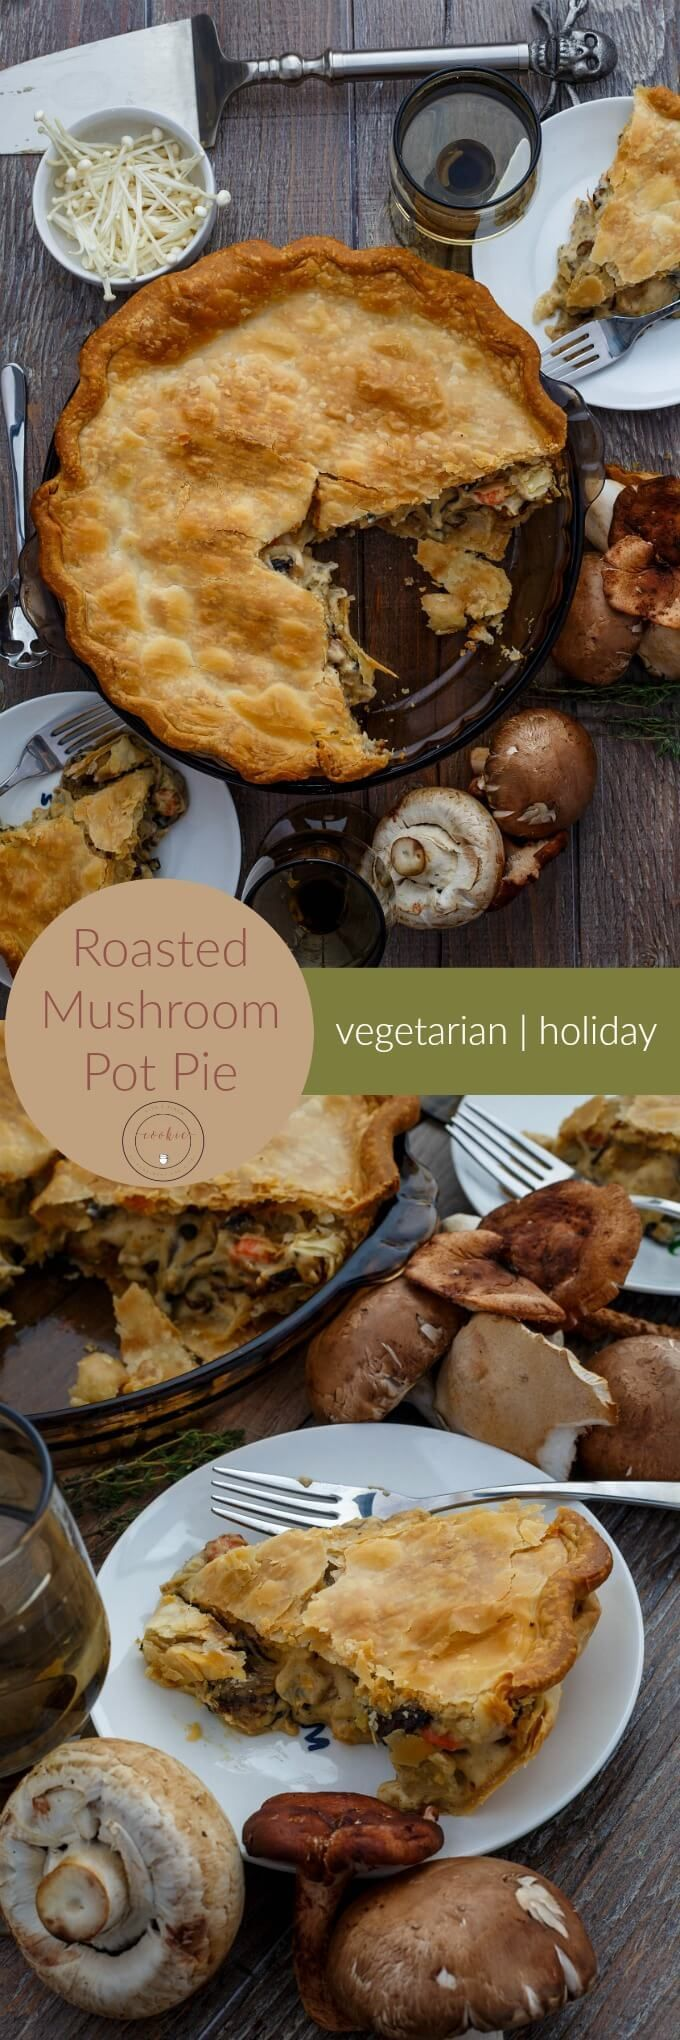 Roasted Mushroom Pot Pie | @thecookiewriter | #mushrooms #blogsgivingdinner | A completely vegetarian meal that is so hearty, even the biggest of meat-eaters will enjoy it!